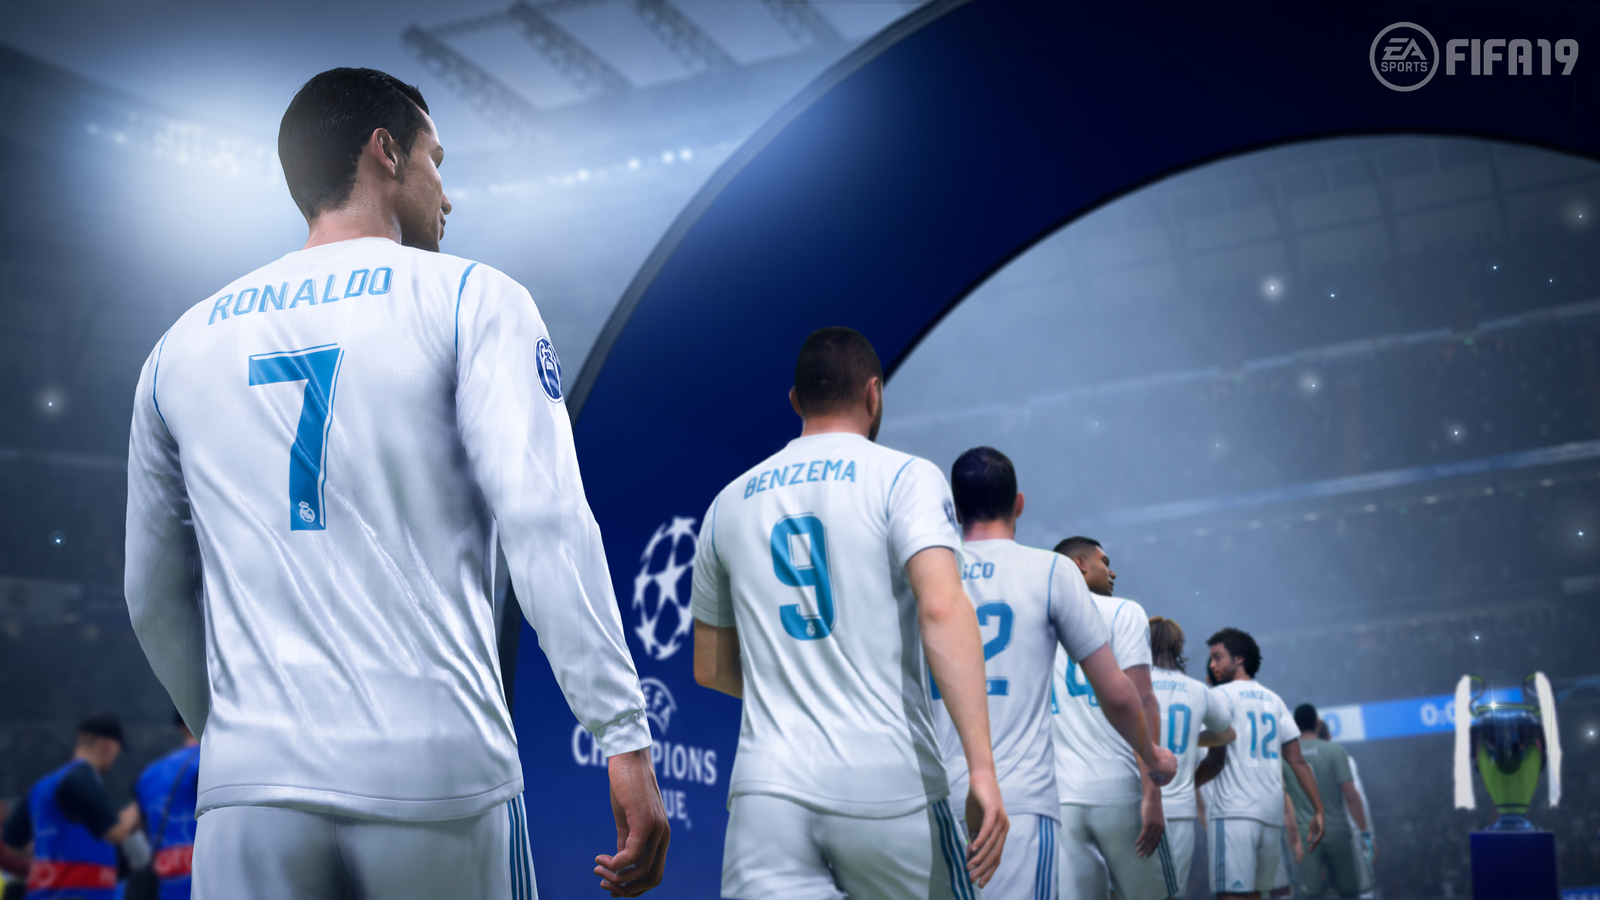 FIFA 19 Champions Edition for Switch image